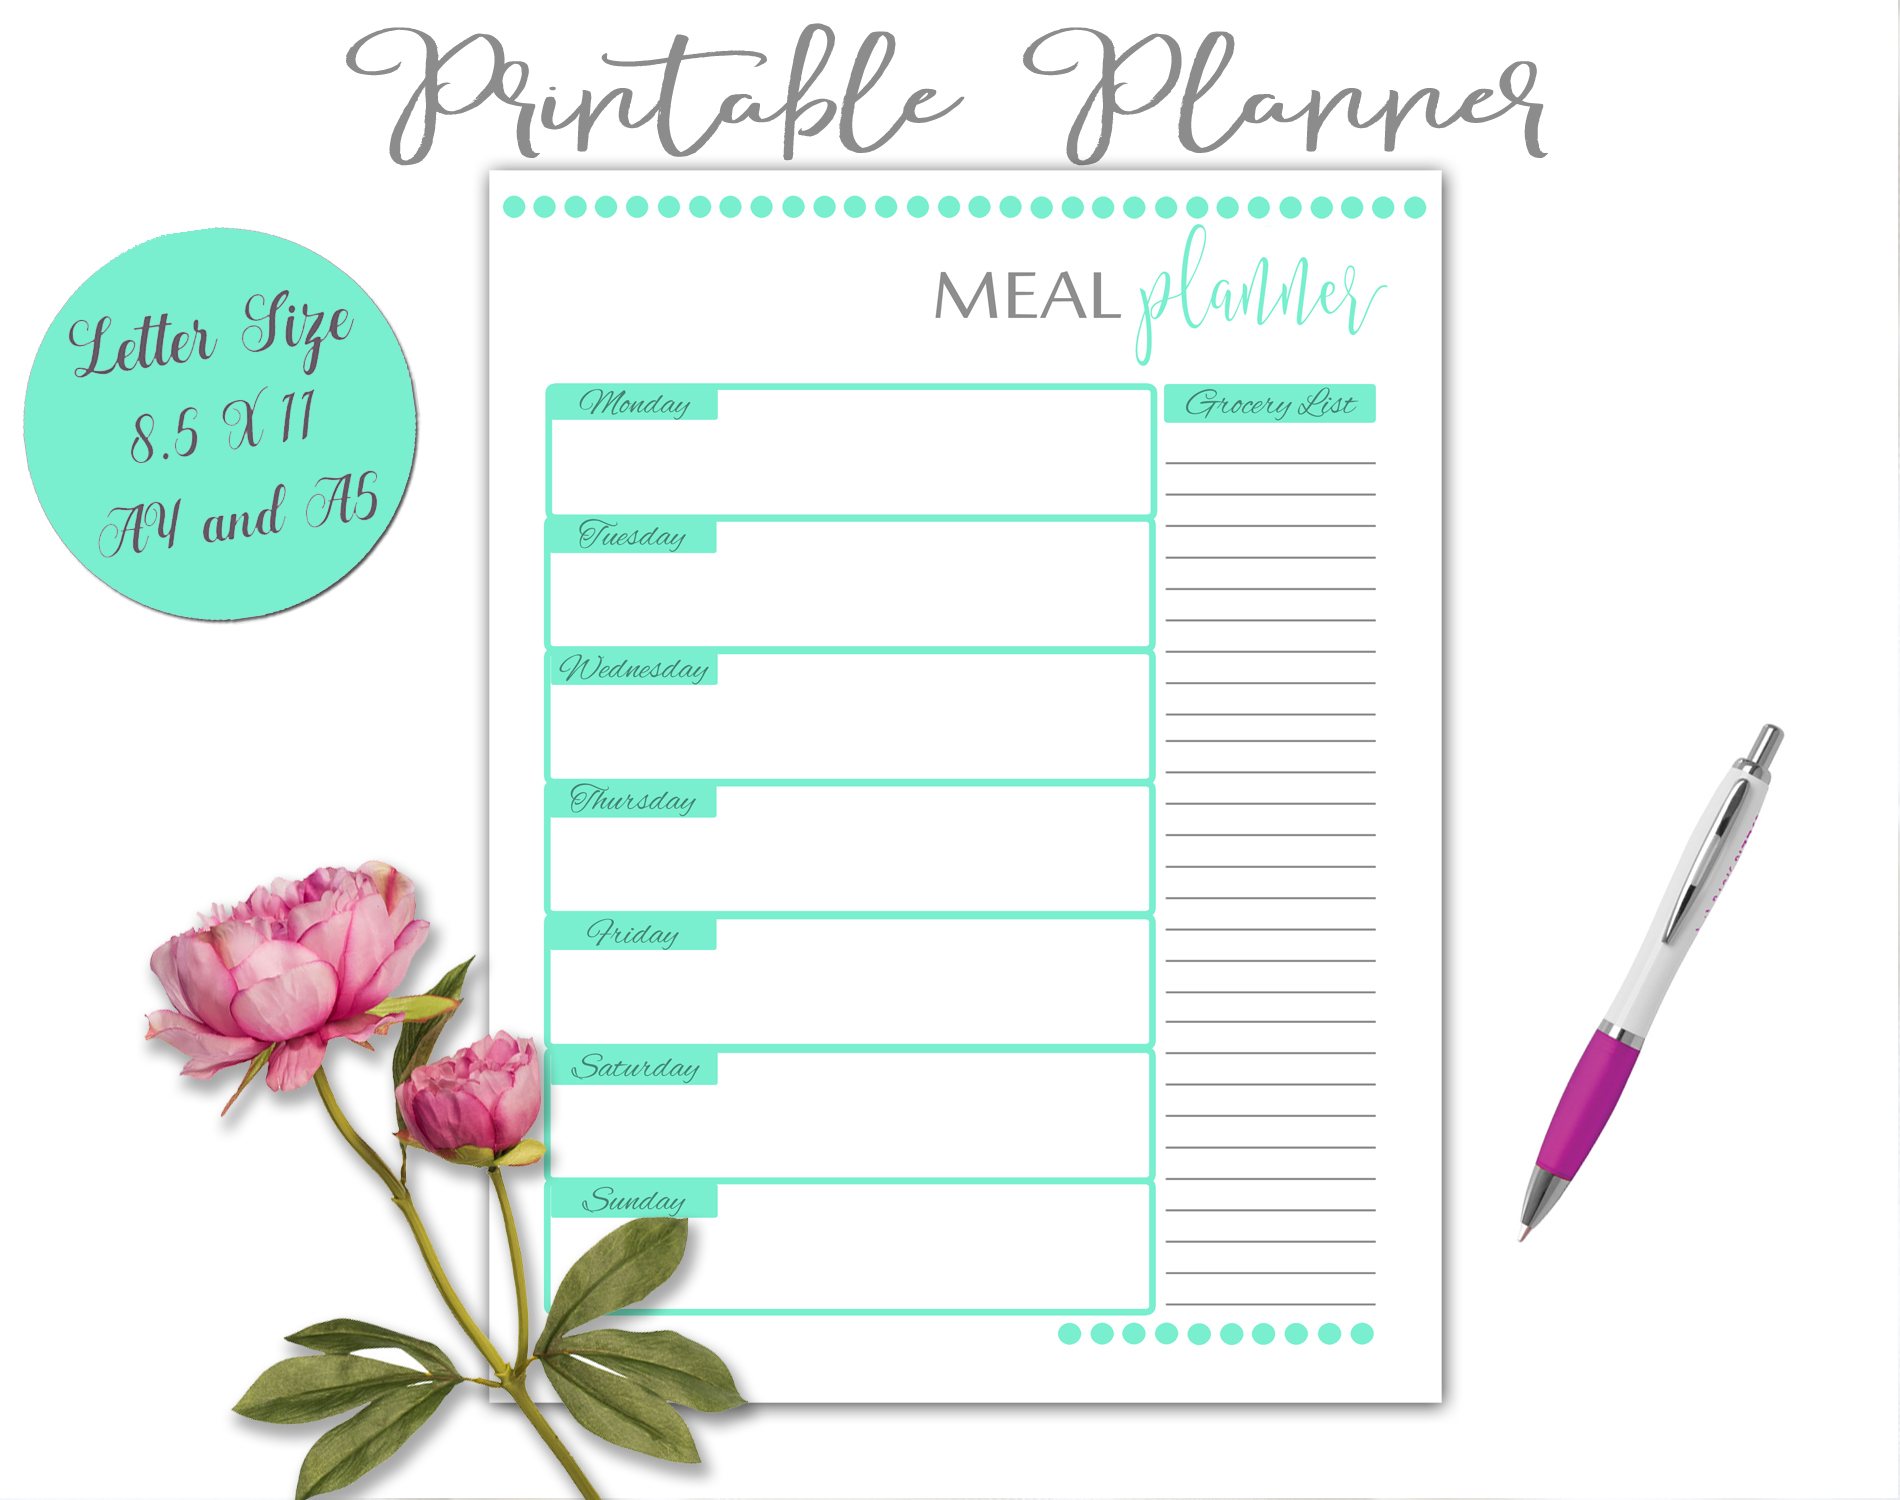 Printable Daily Weekly Monthly Planner Sheets example image 8